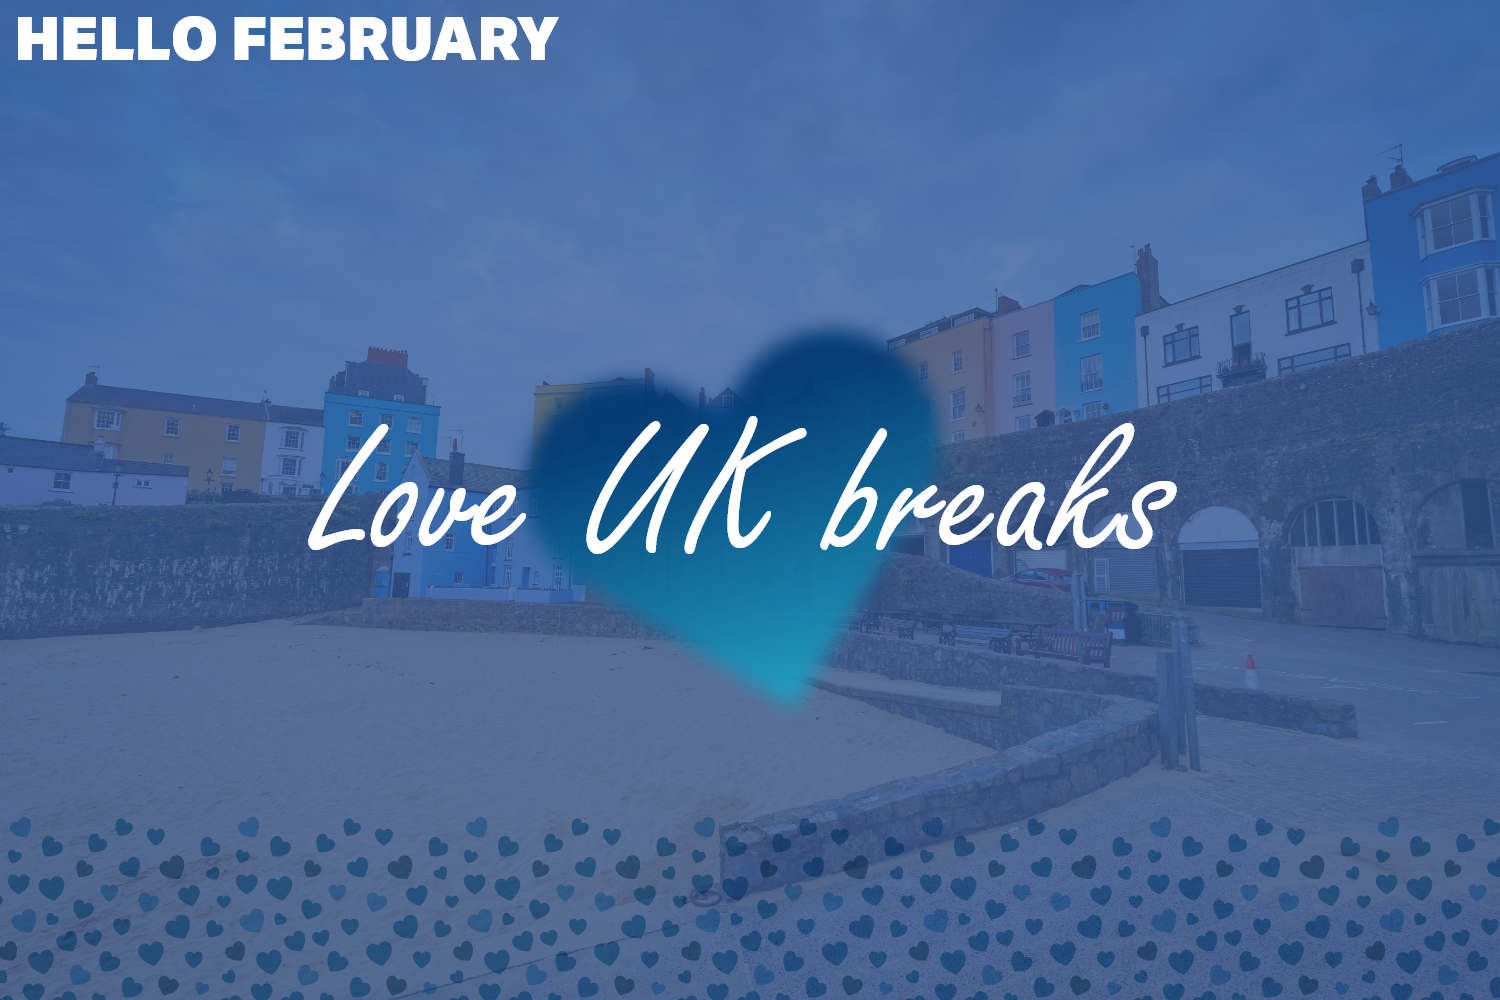 Love UK breaks>